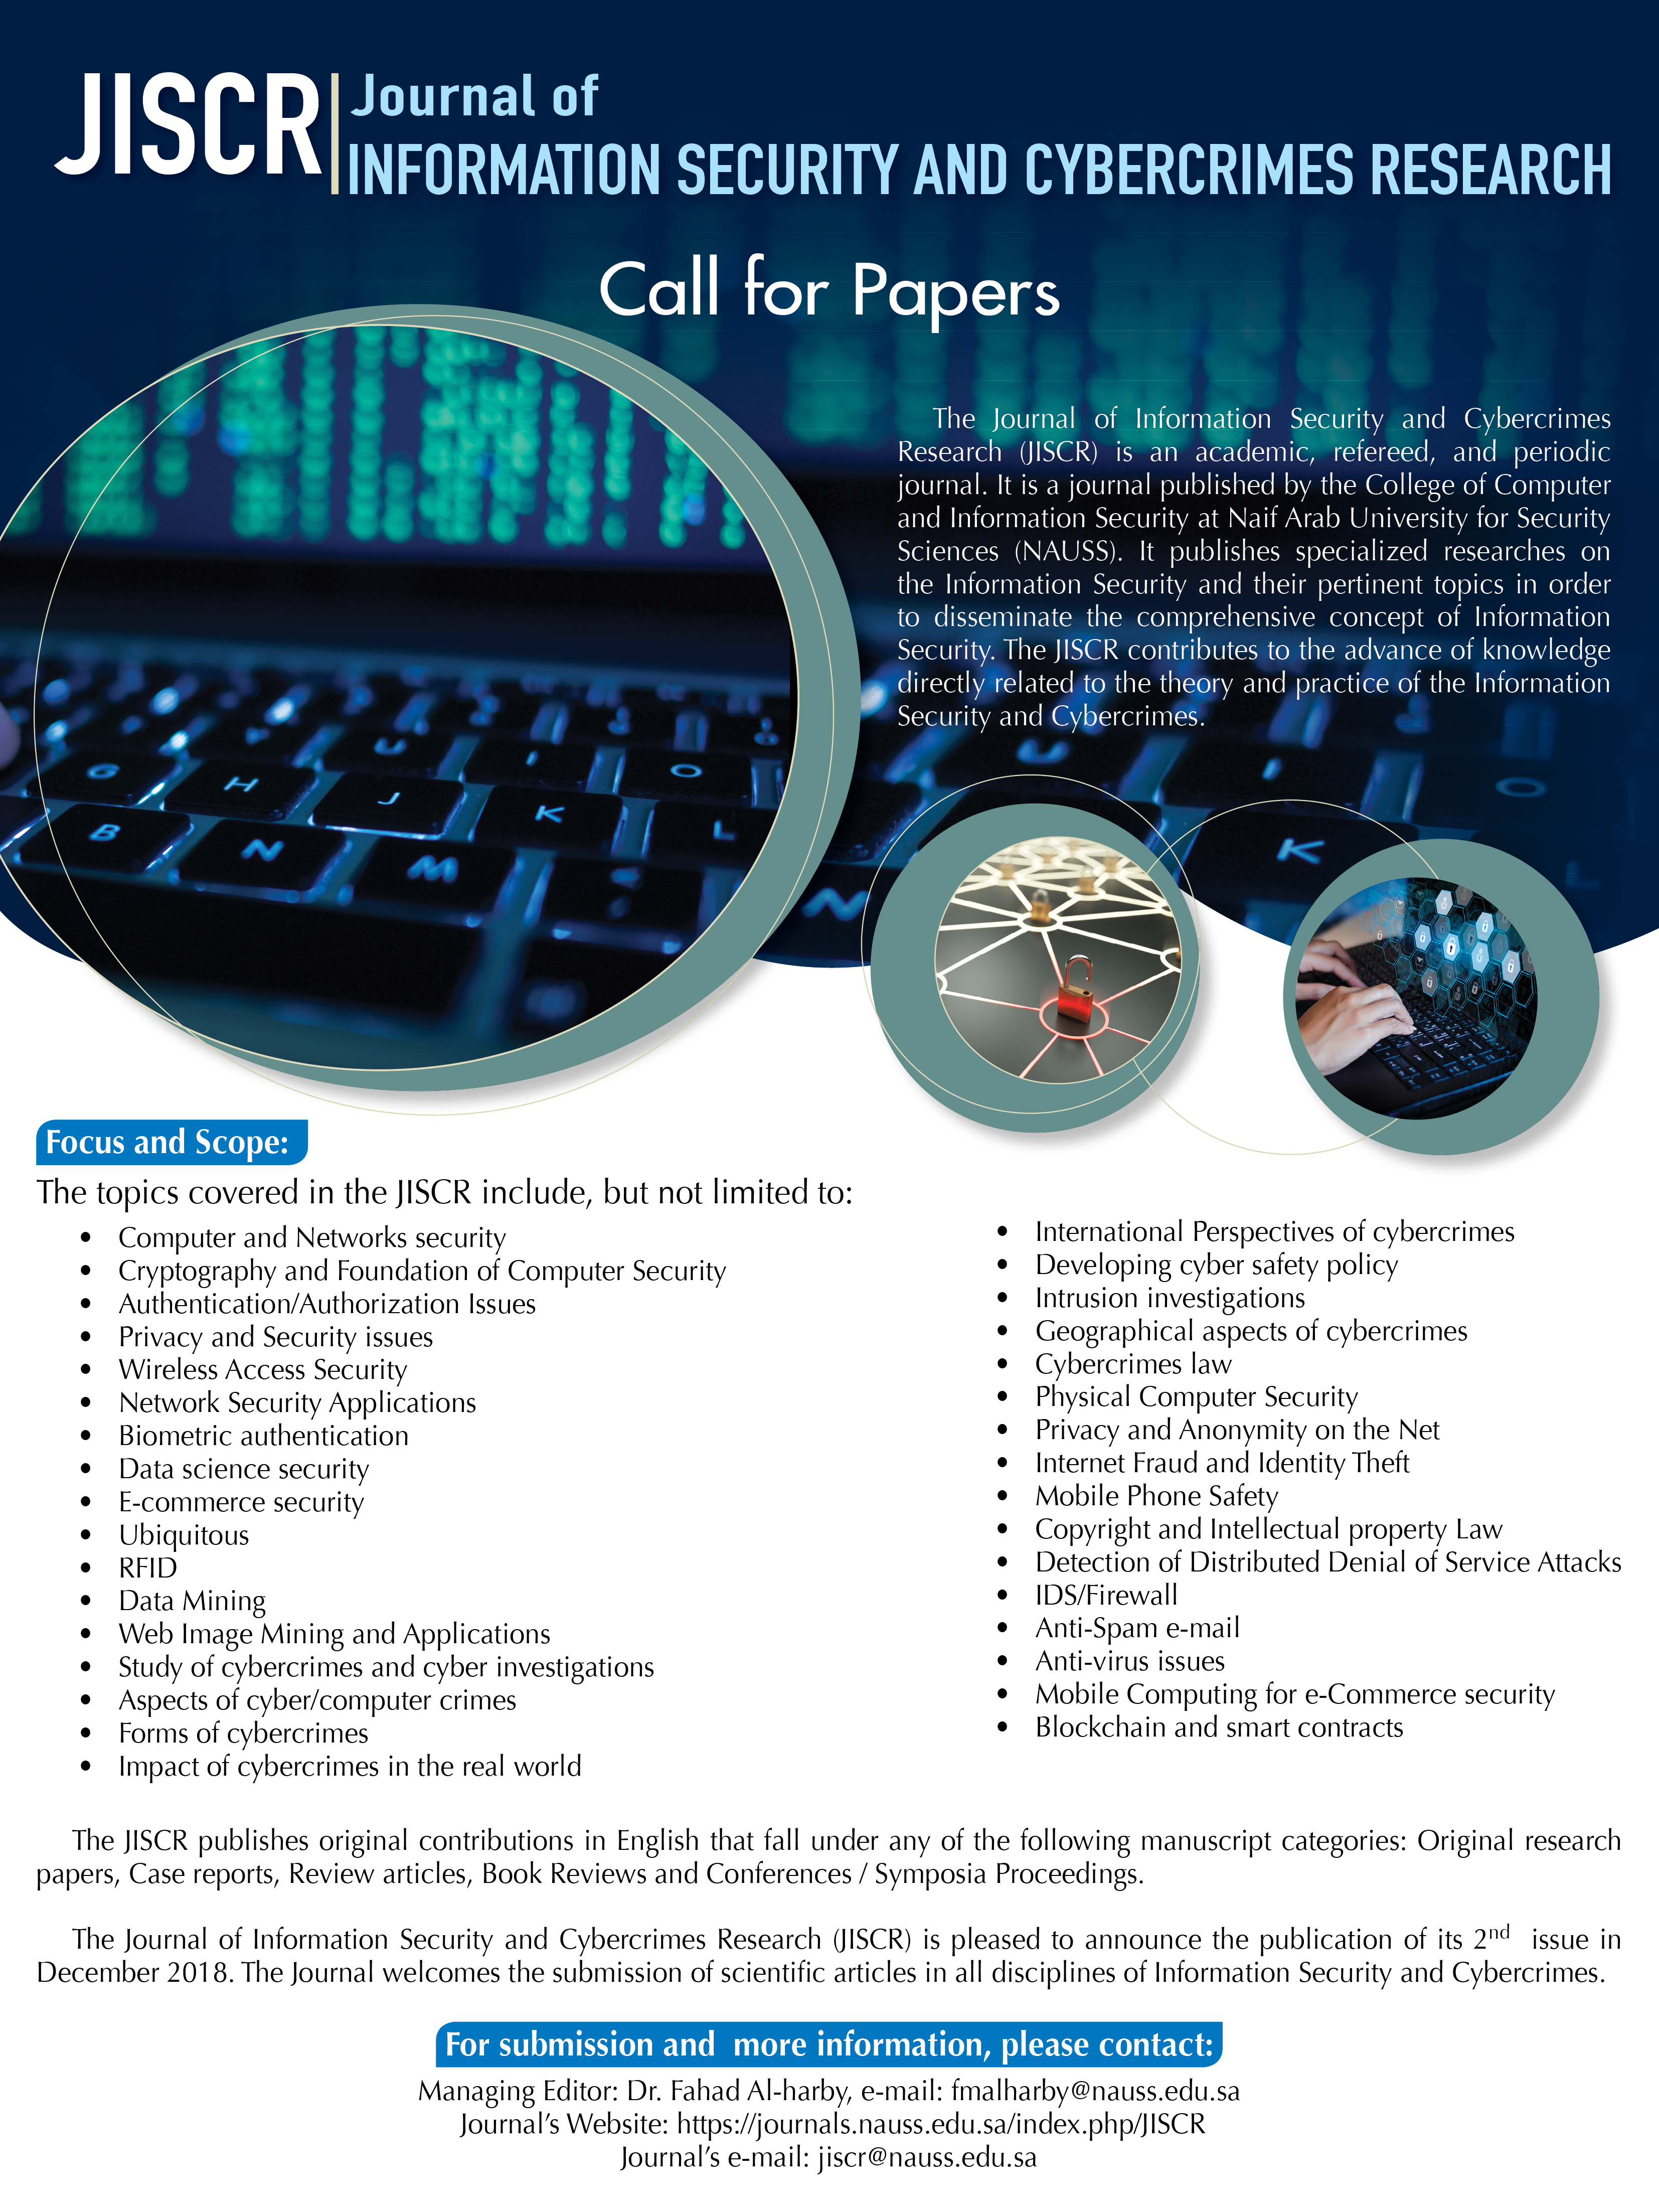 024 Call For December Cyber Security Research Dreaded Paper Papers 2018 Pdf Ieee On 2019 Full